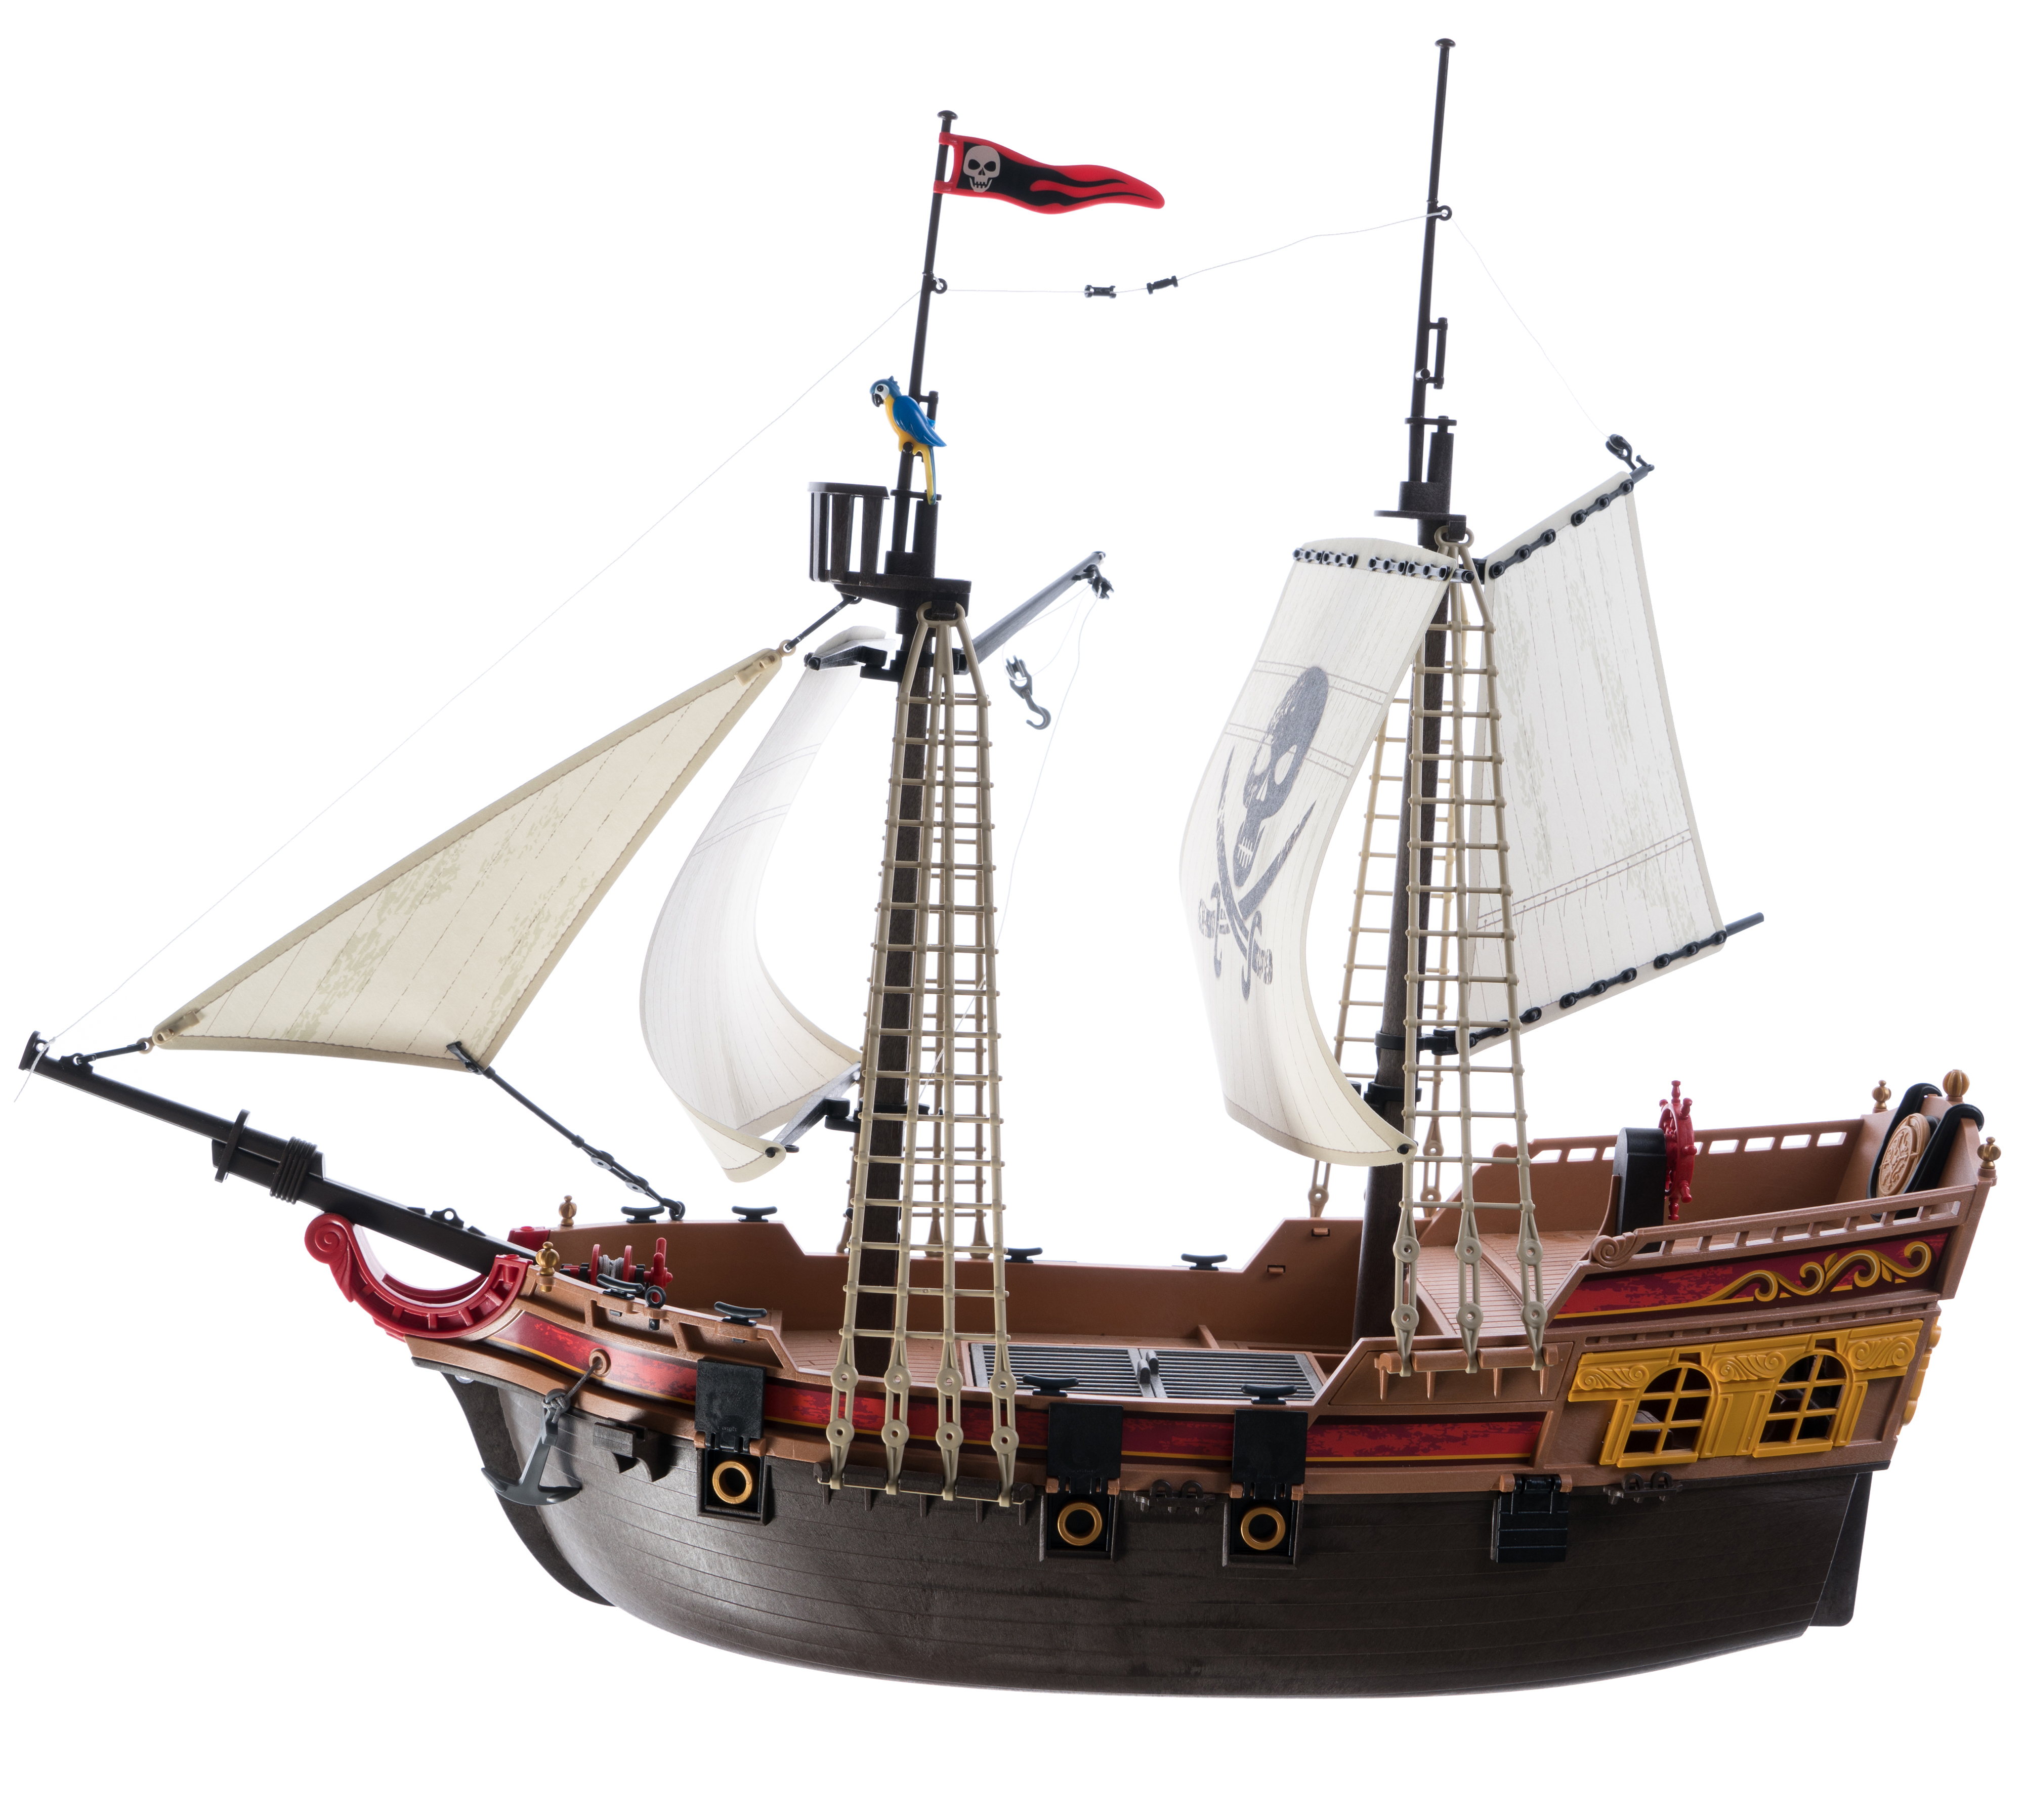 Free USPS shipping software | Pirate Ship